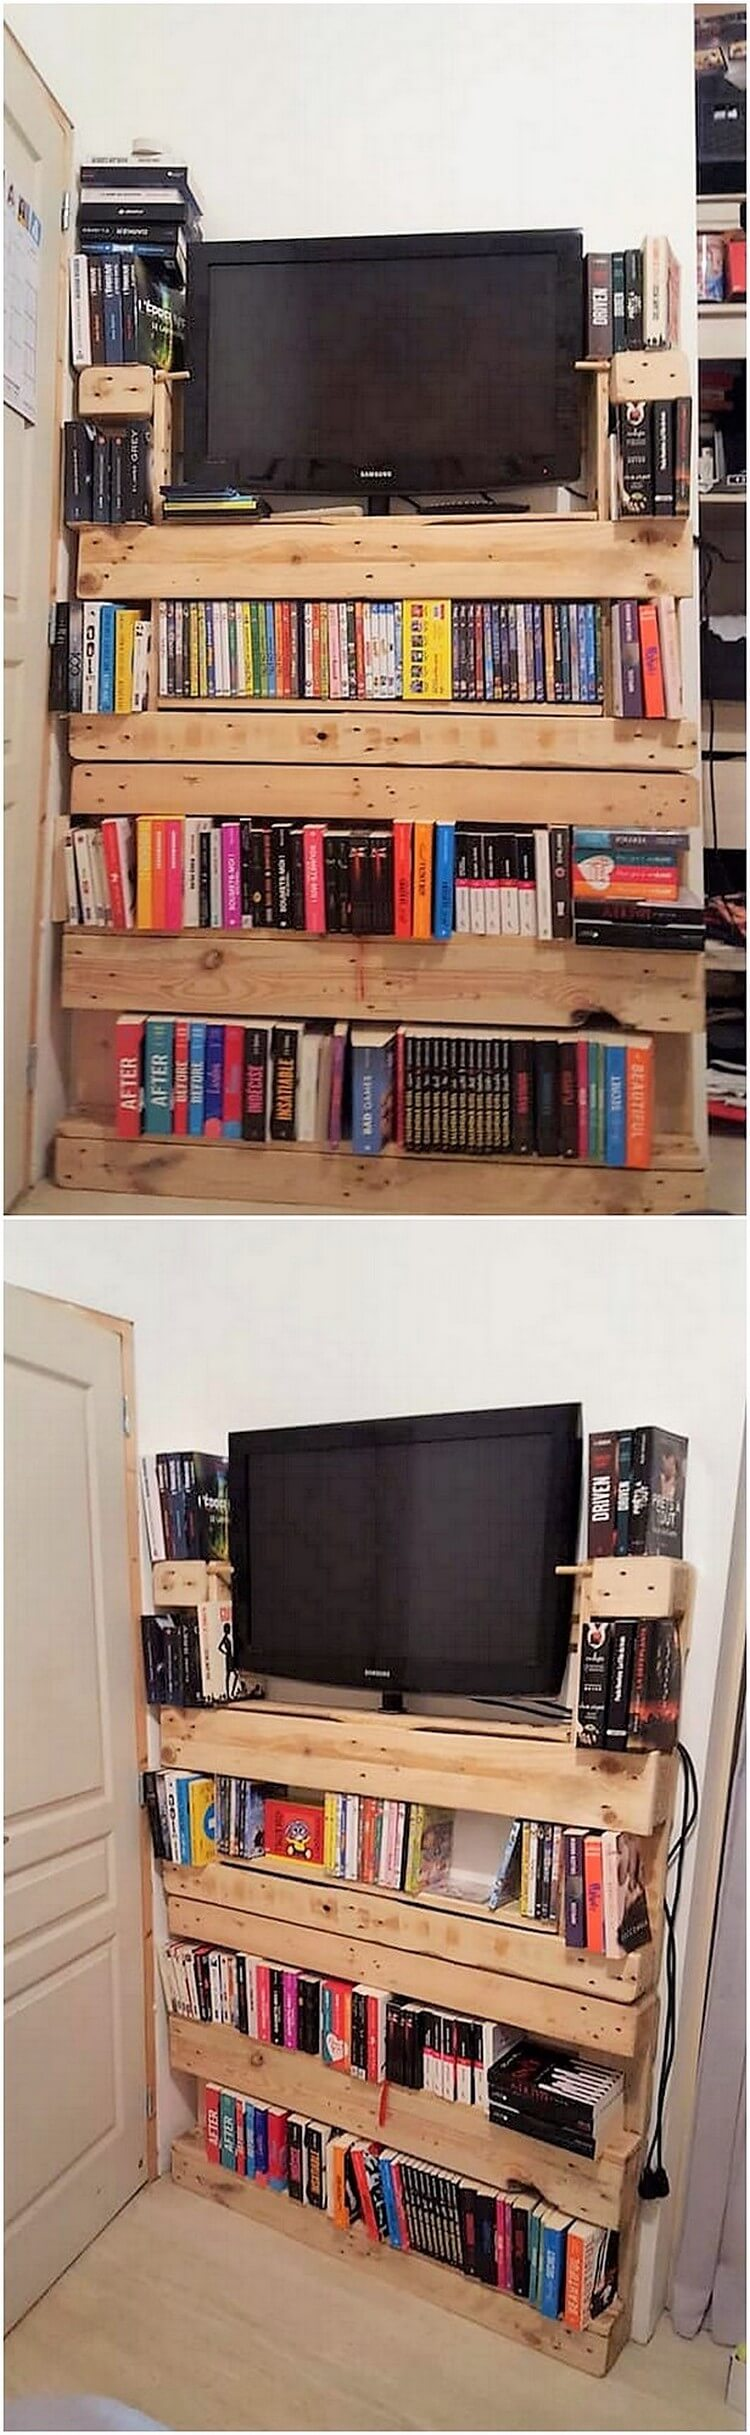 Pallet TV Stand or Bookshelf